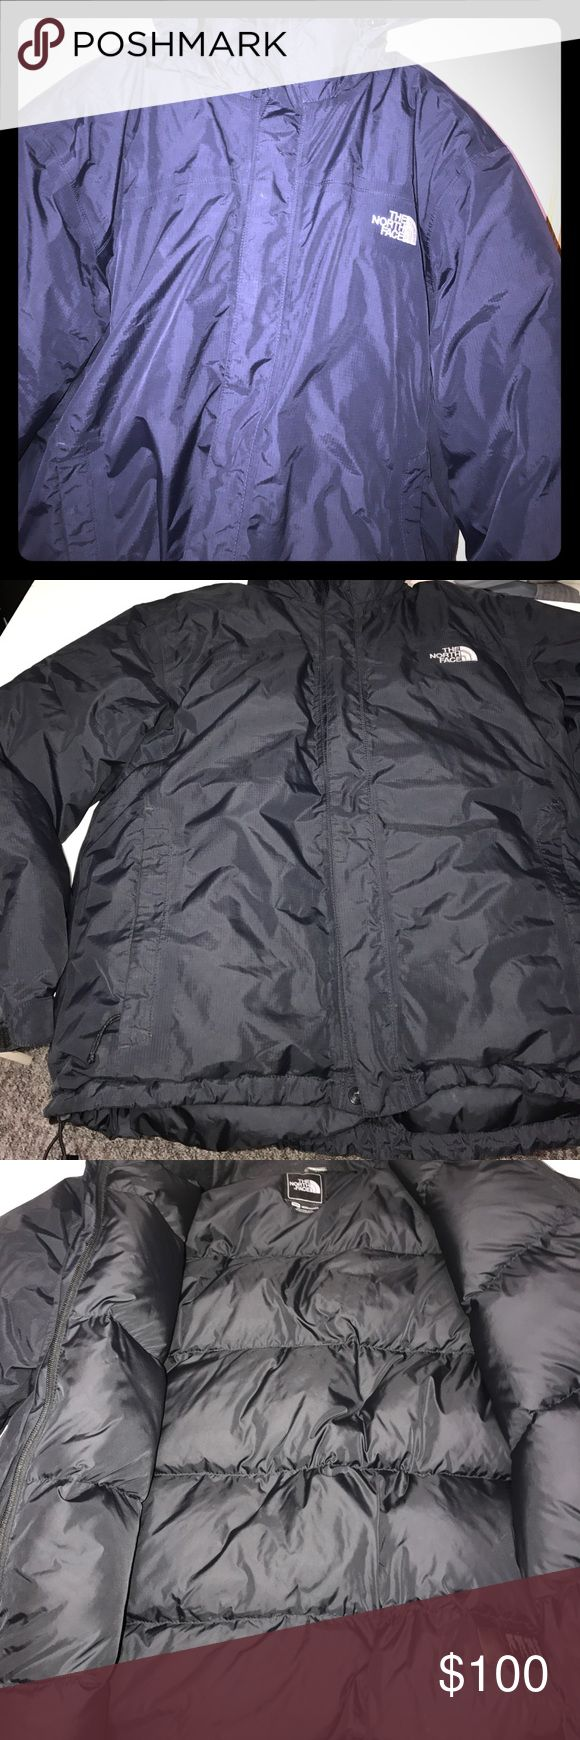 Men's North Face Warm Winter Coat -M Excellent Condition- Removable hood . Adjustable pull strings bottom. No defects . The North Face Jackets & Coats Puffers